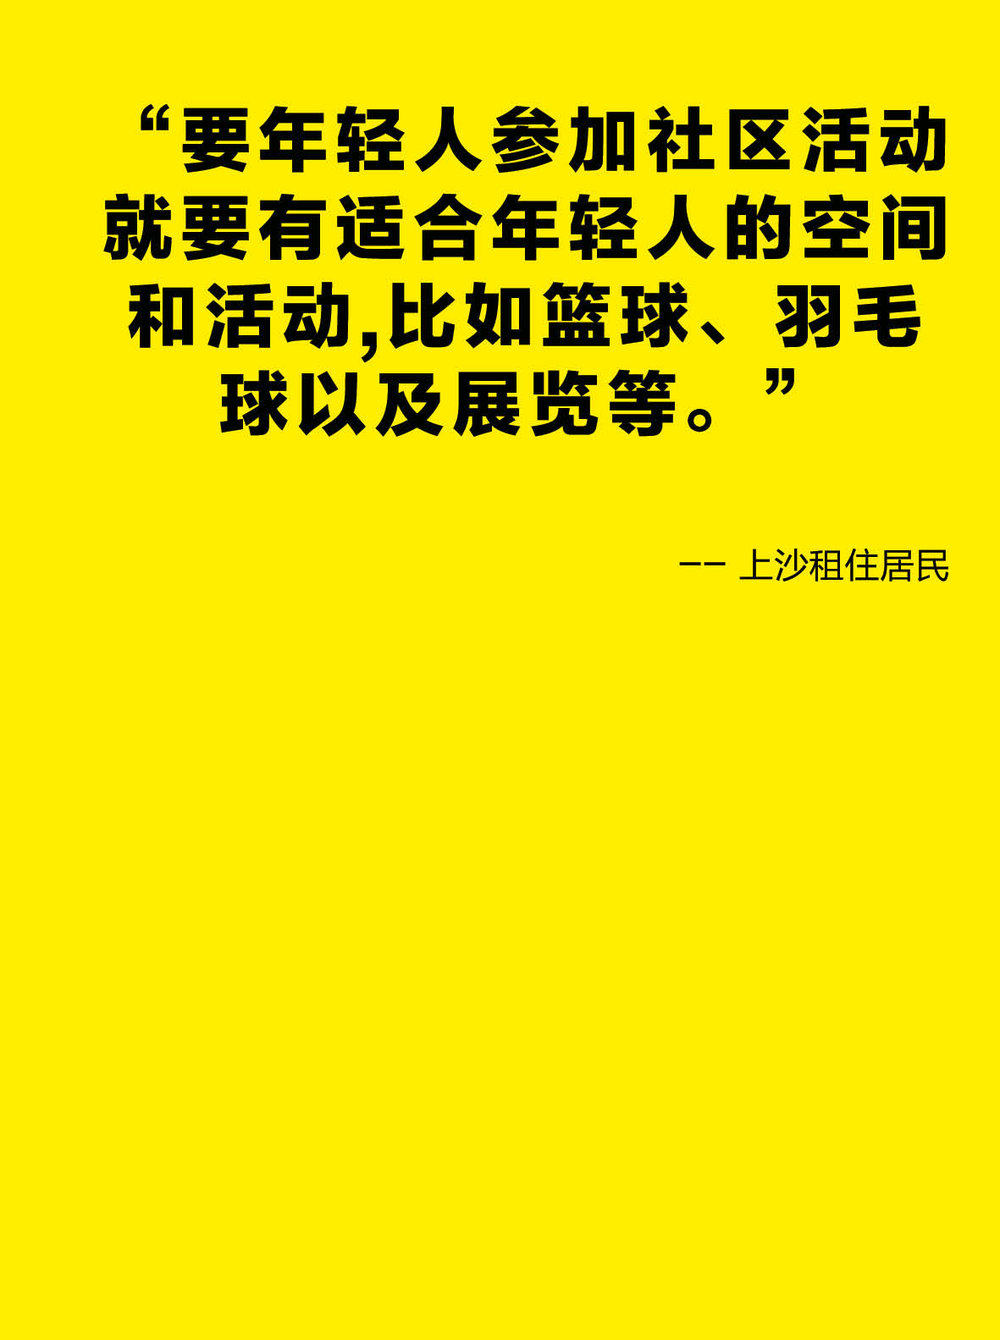 20180106_Shangsha Quotes test0324.jpg